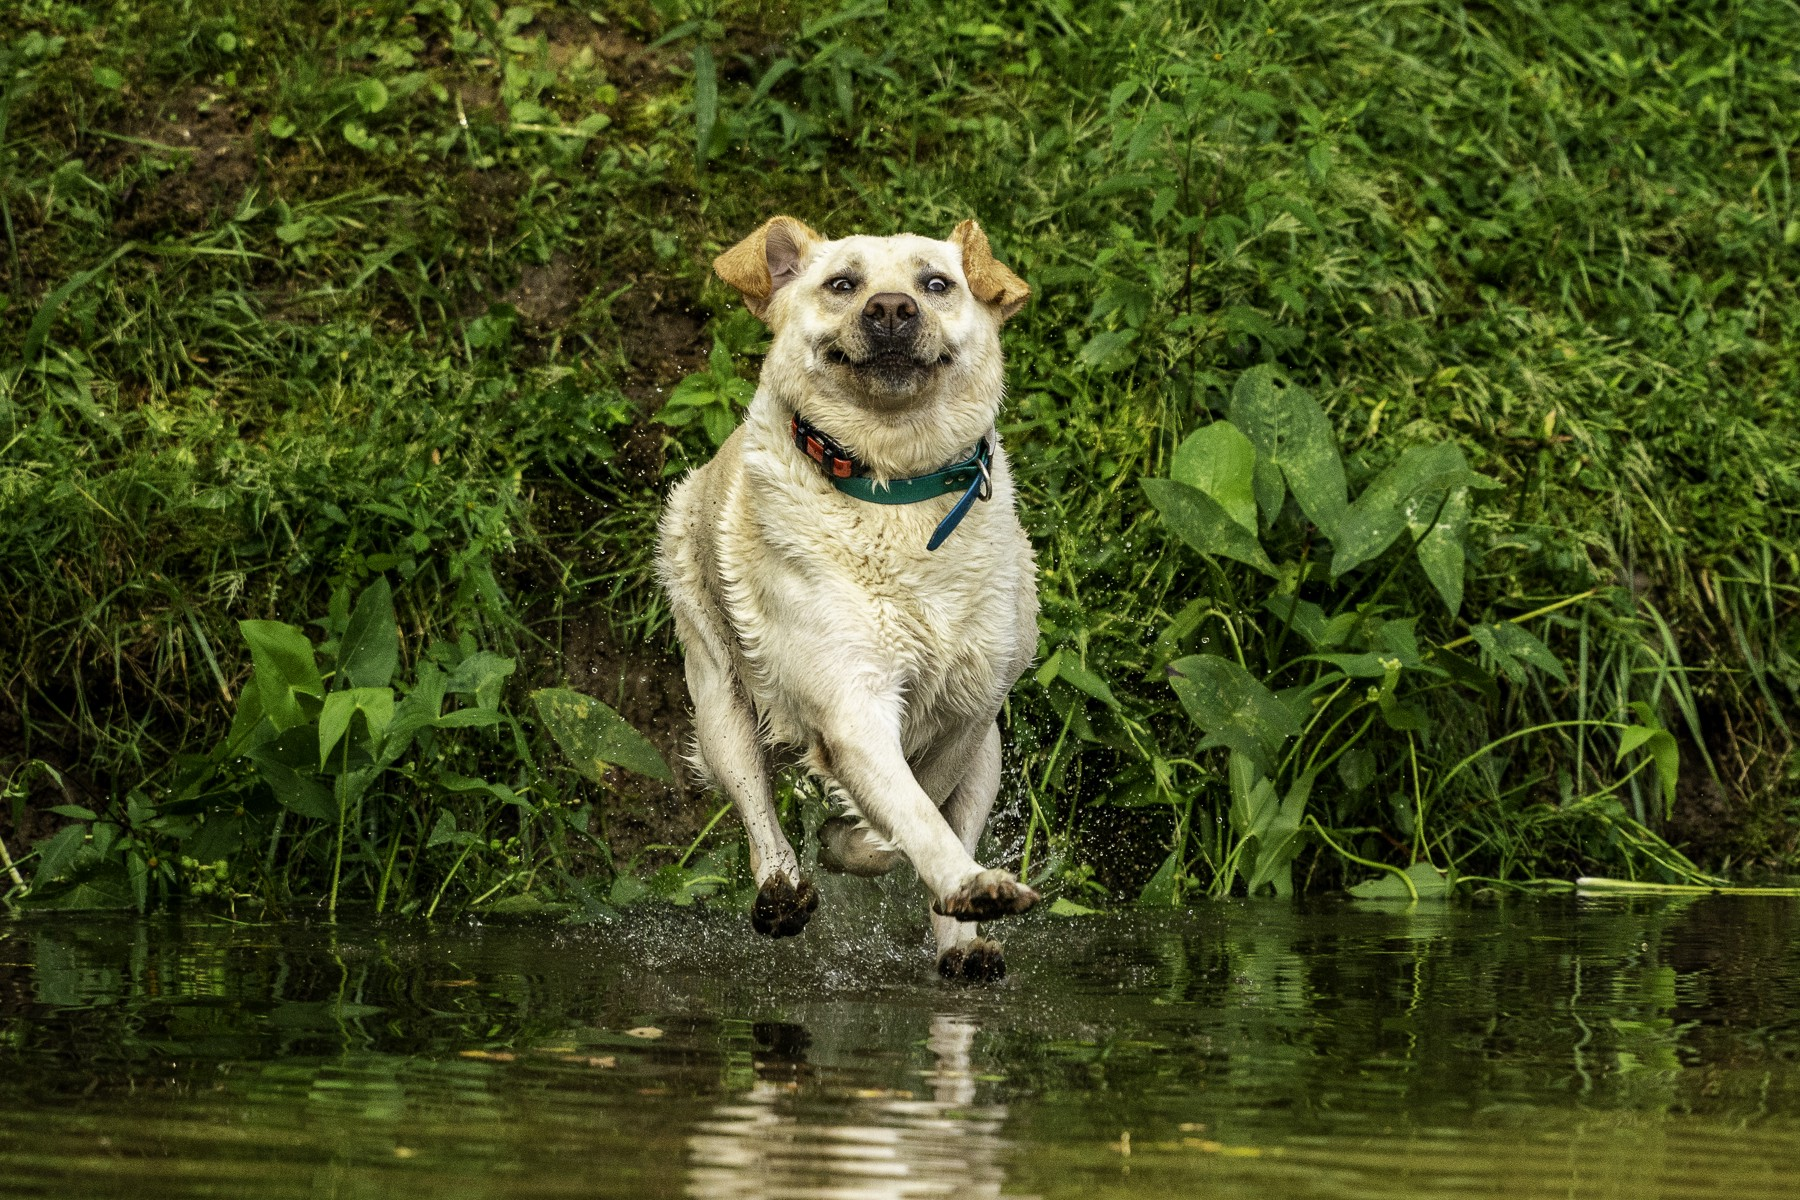 A dog running in a creek appears to be floating over the water, with an incredibly goofy expression on his face